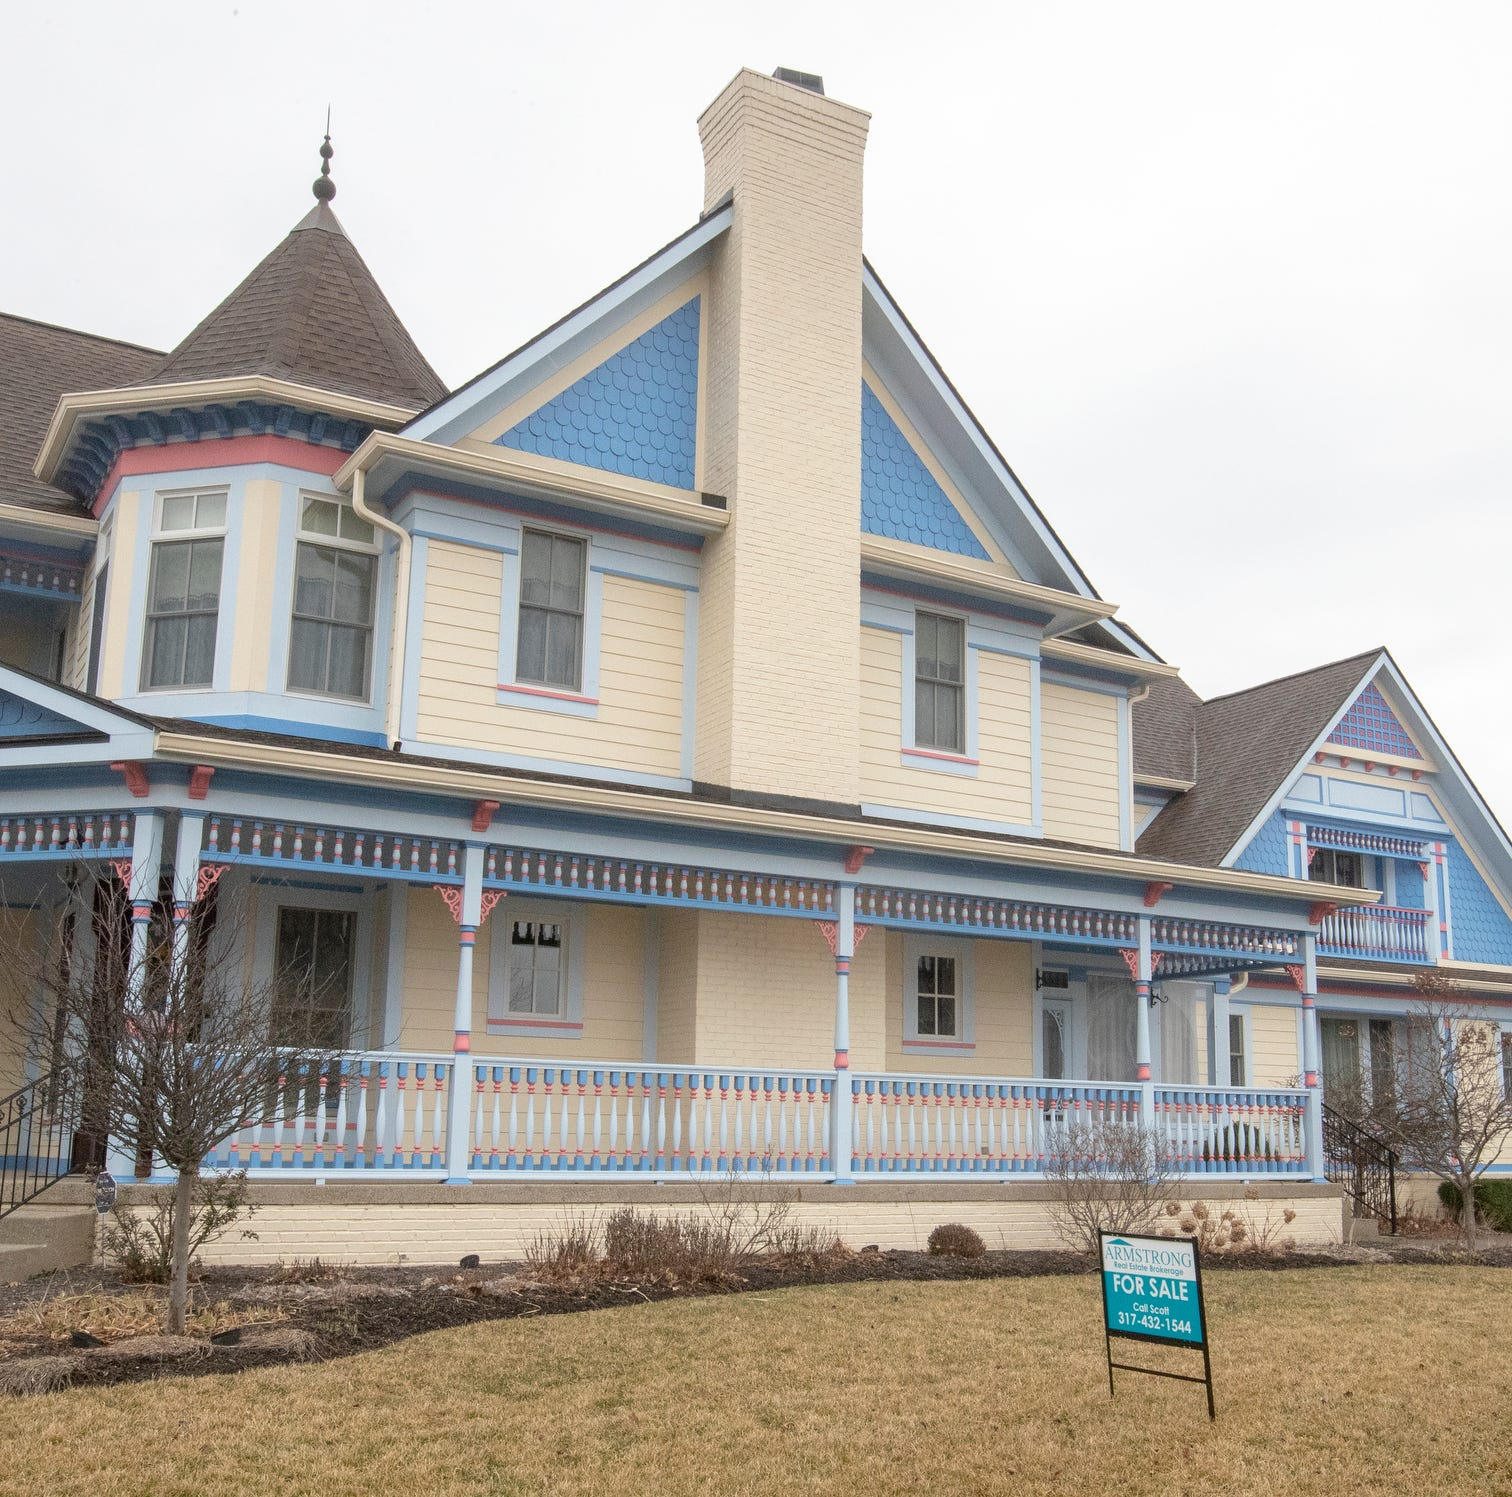 Hot Property: Here's a peek inside the candy land home of the Village of WestClay